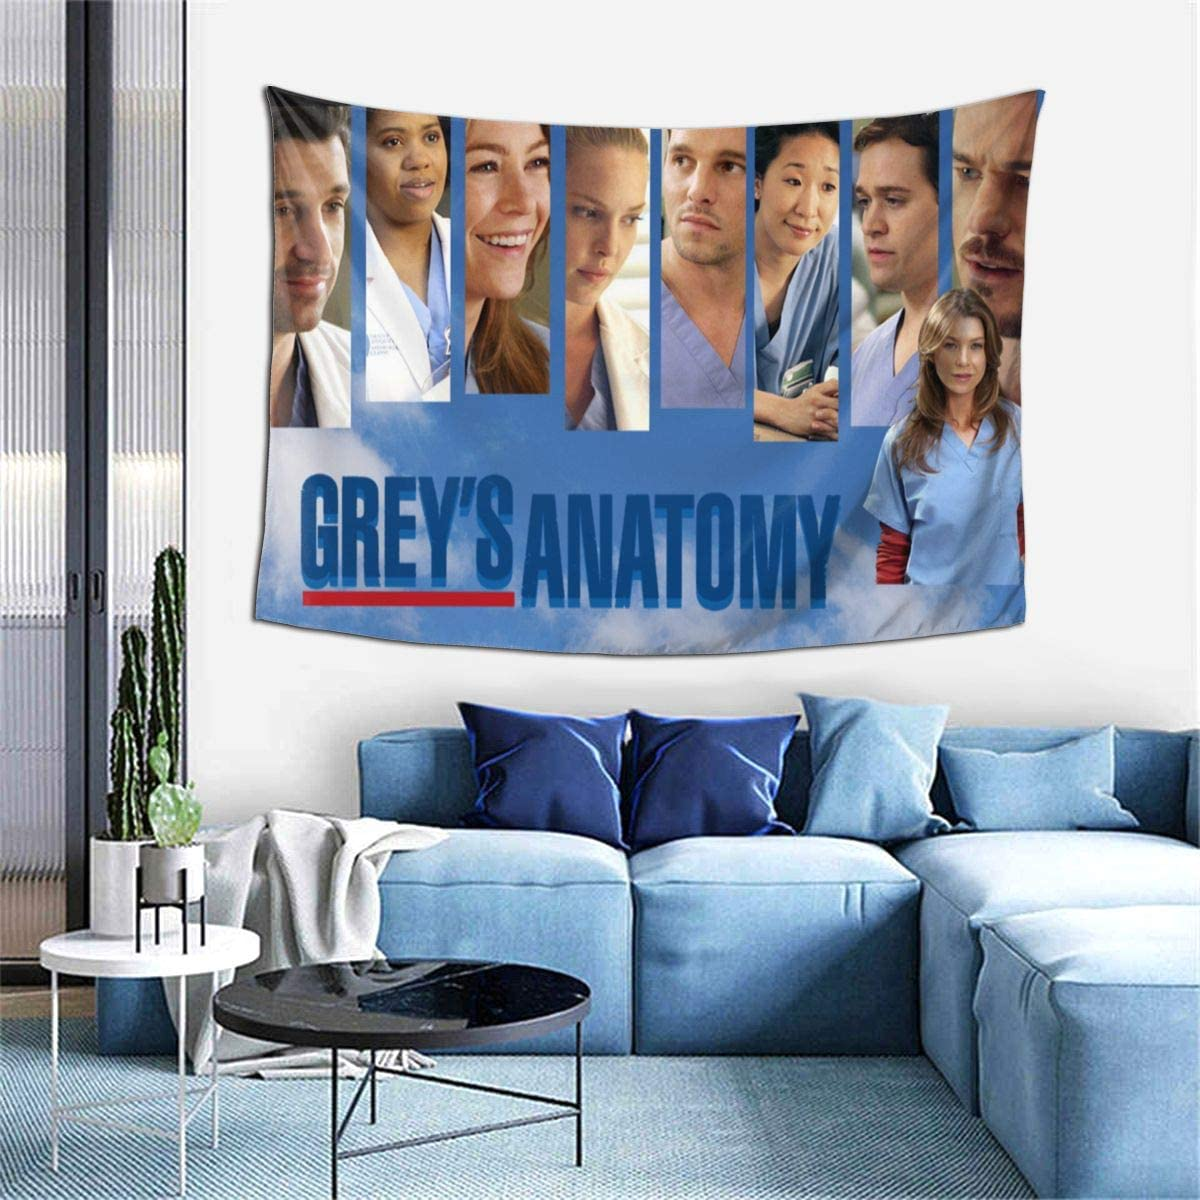 Bestrgi Tapestry Art Wall Hangings 3D Printing Wall Blanket Wall Art Grey's Anatomy Warm Throw Home Decor for Bedroom Living Room Dorm Home Decor Decoration 60x40 Inches